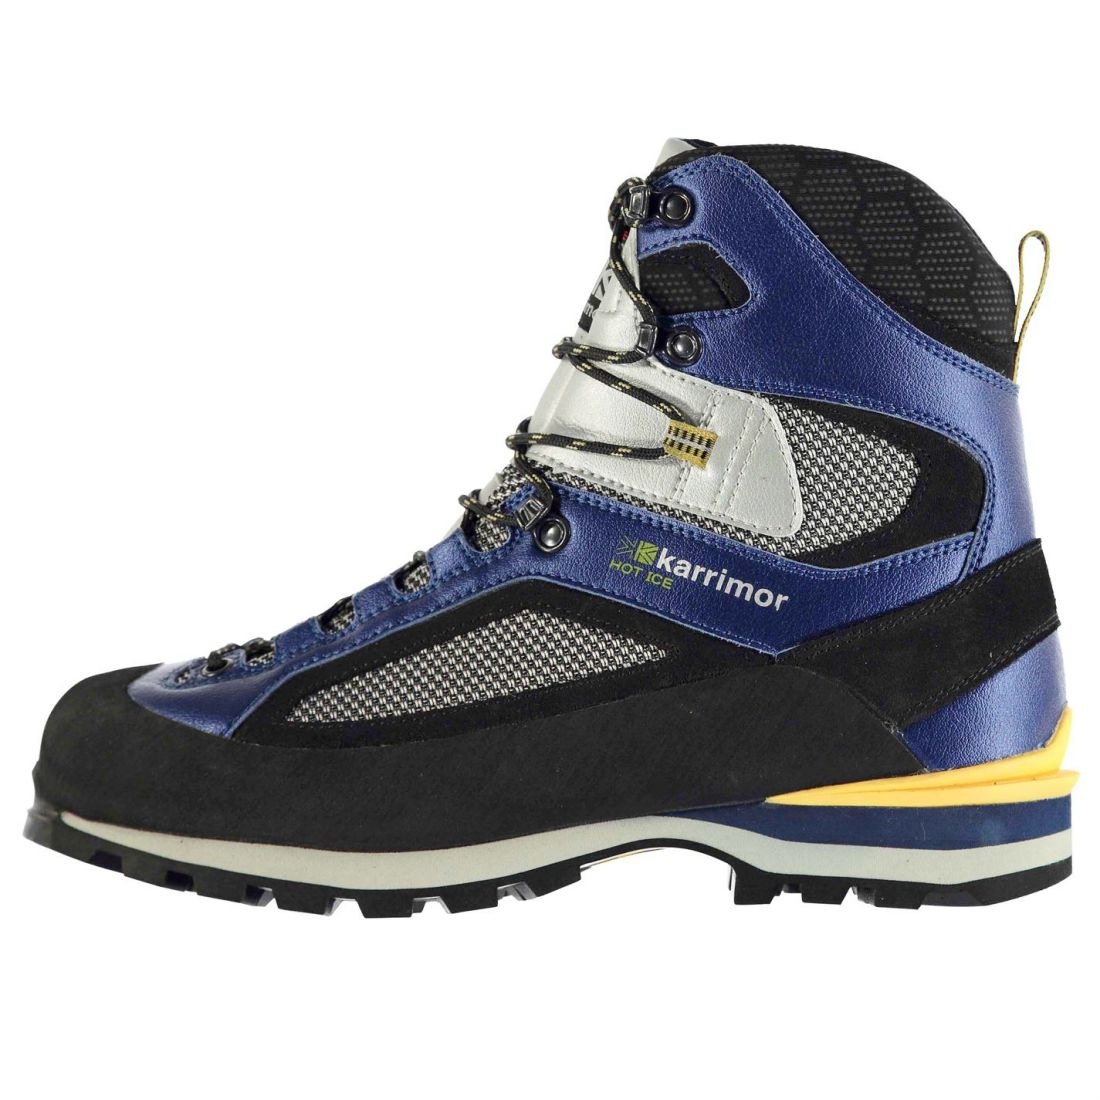 Karrimor Mens Hot Ice Mountain Boots Lace Up Vibram Textile Waterproof shoes